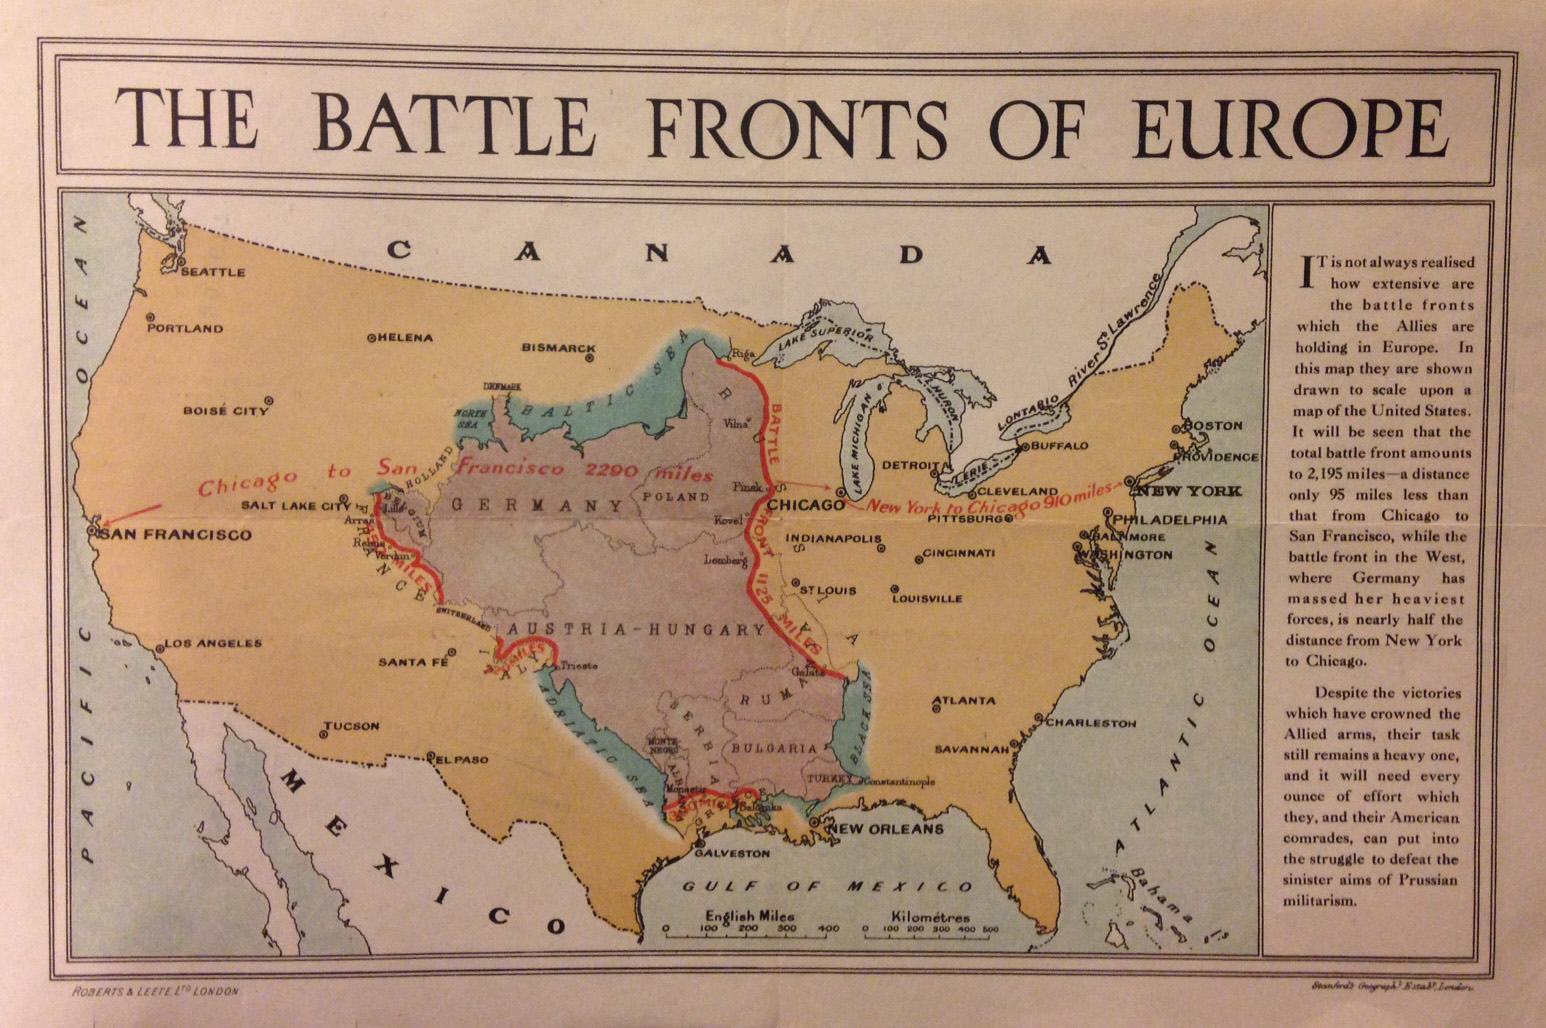 battle-fronts-of-europe-projected-onto-the-us